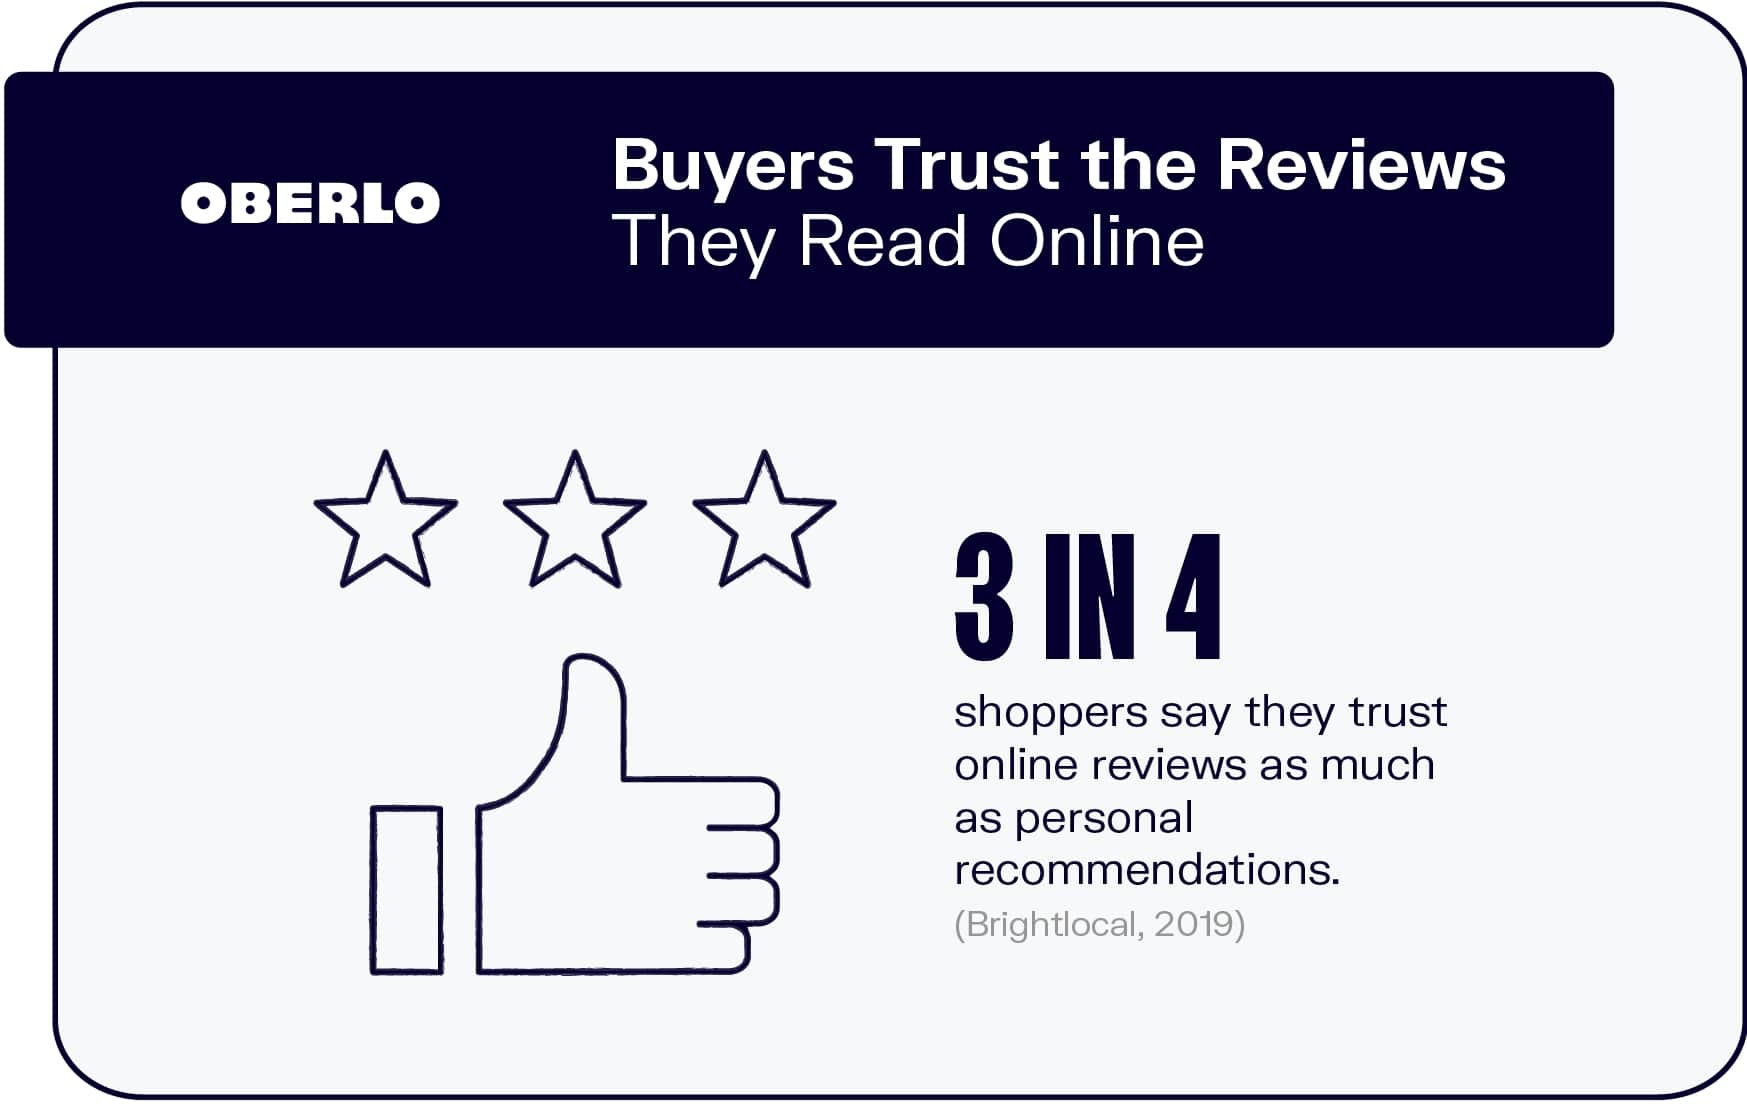 Buyers Trust the Reviews They Read Online